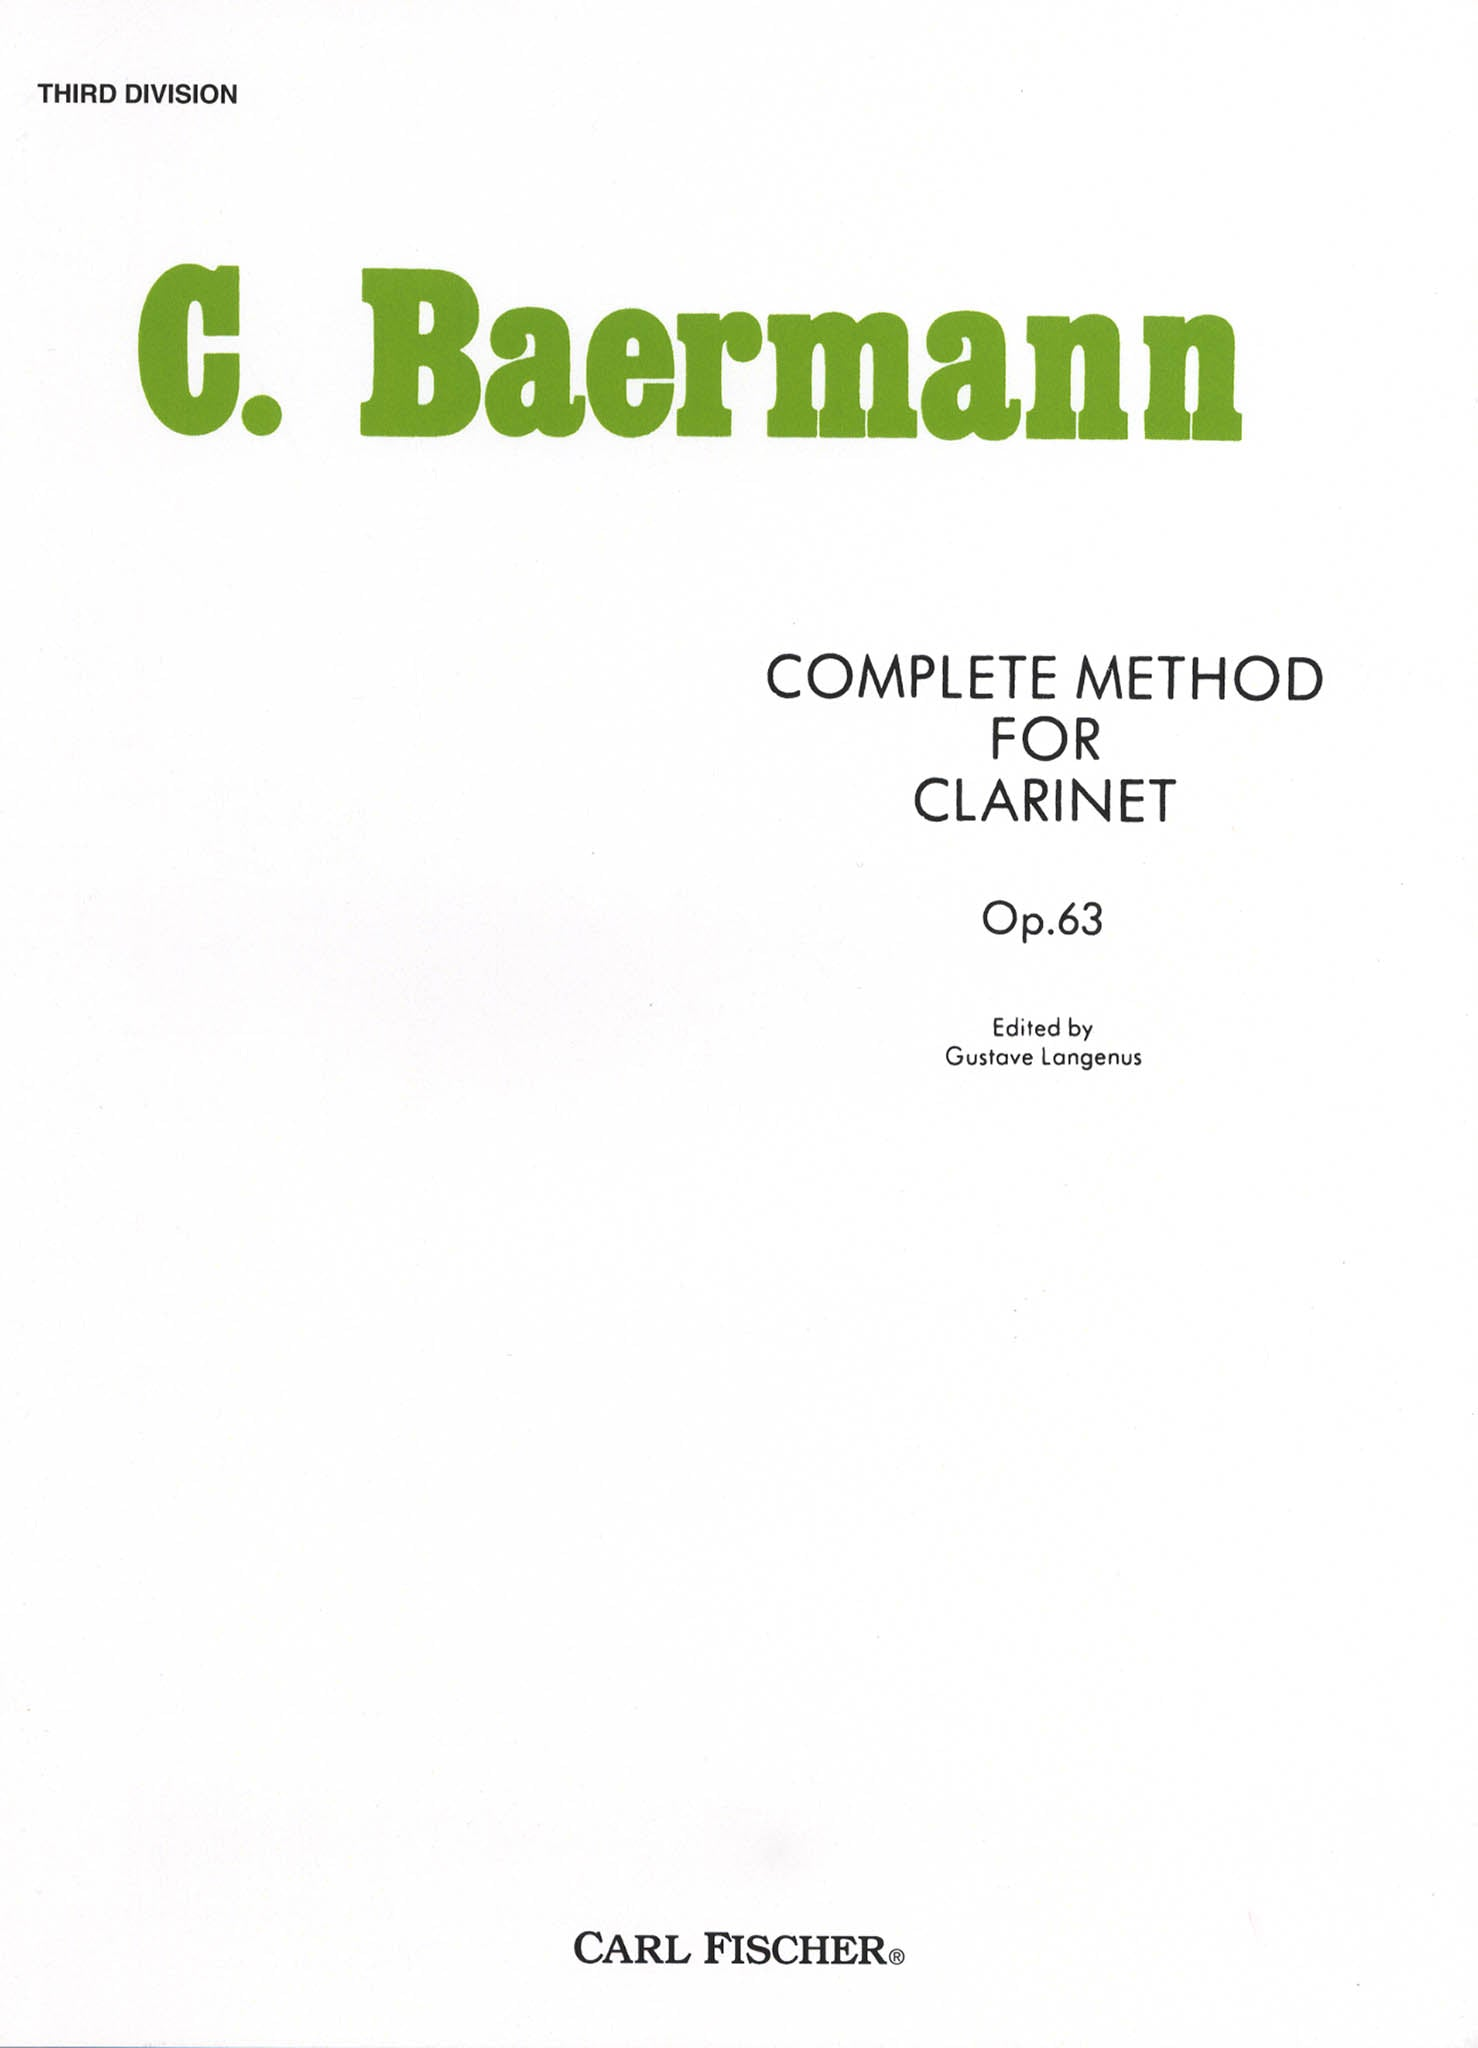 Daily Exercises from the Clarinet Method, Op. 63, Division 3 Cover